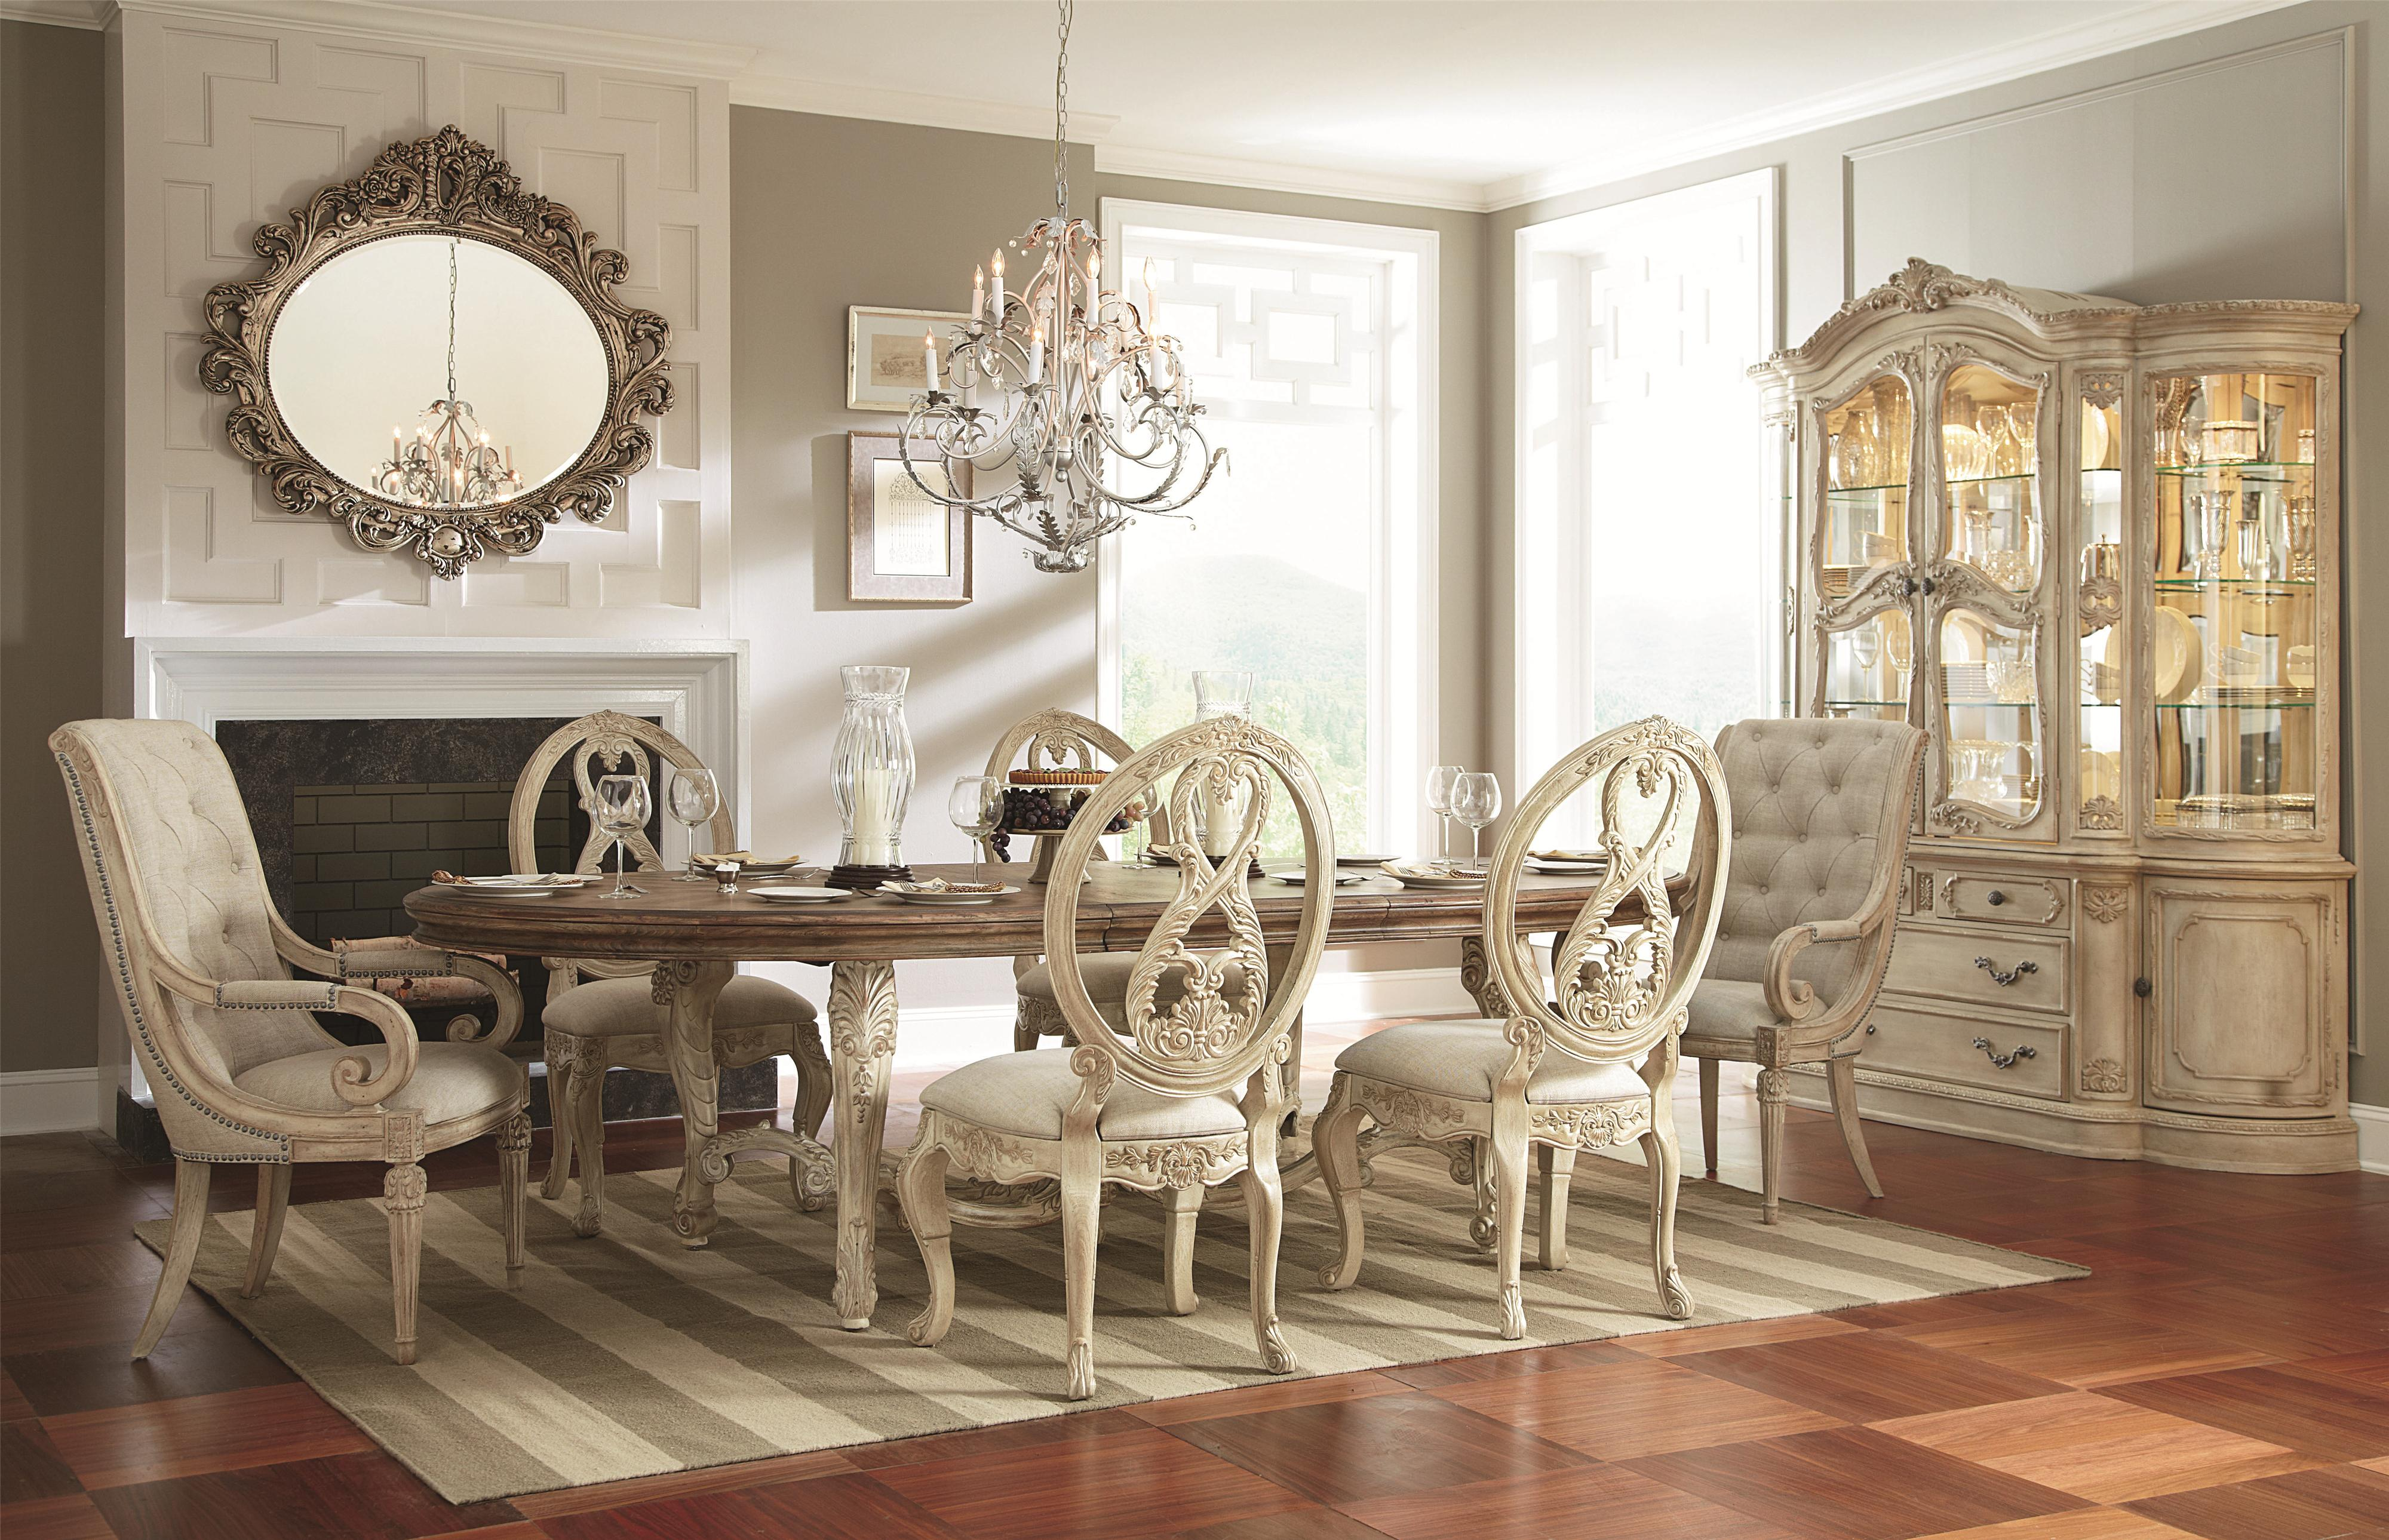 American Drew Jessica McClintock Home - The Boutique Collection 7 Piece Dining Table Set | Northeast Factory Direct | Dining 7 (or more) Piece Sets ... & American Drew Jessica McClintock Home - The Boutique Collection 7 ...